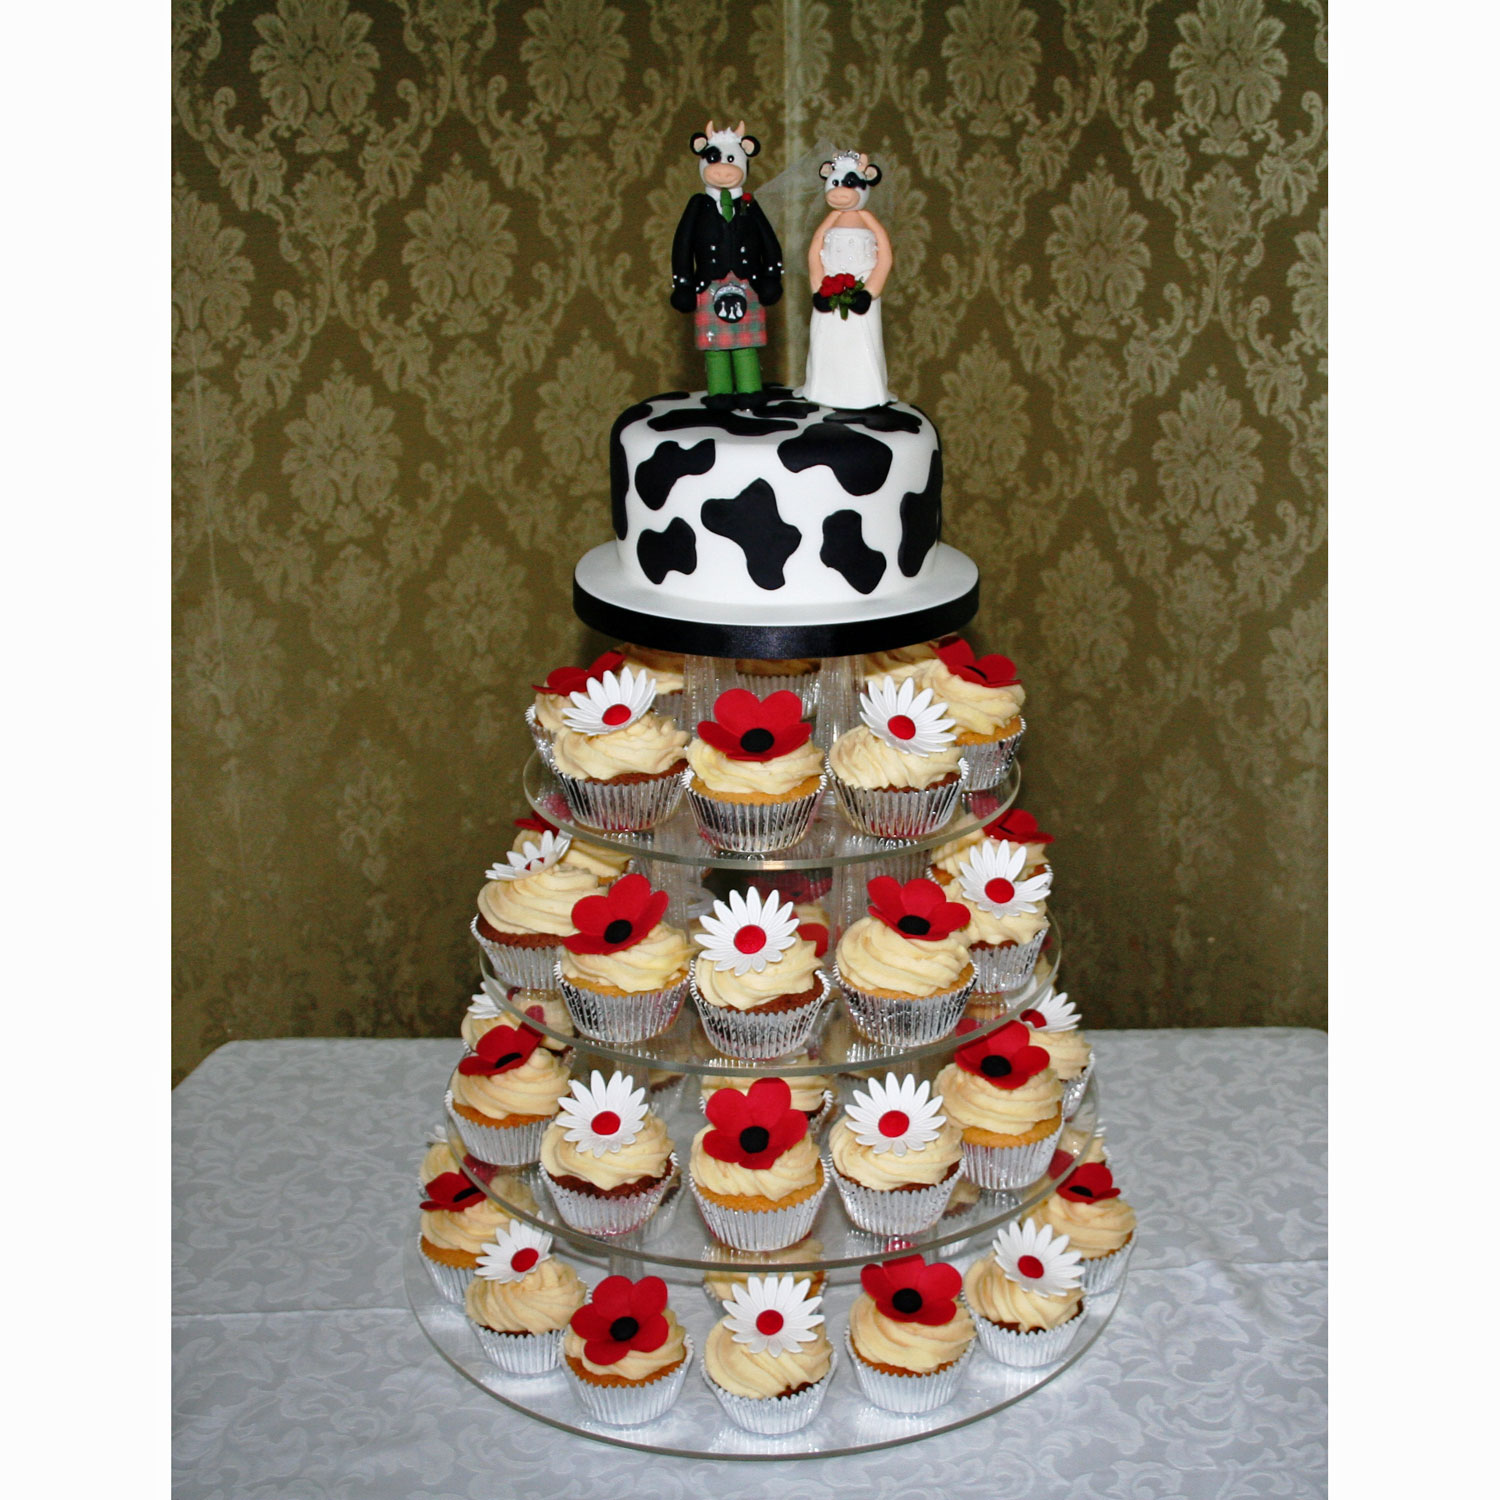 Cupcakes with Bride and Groom Cows